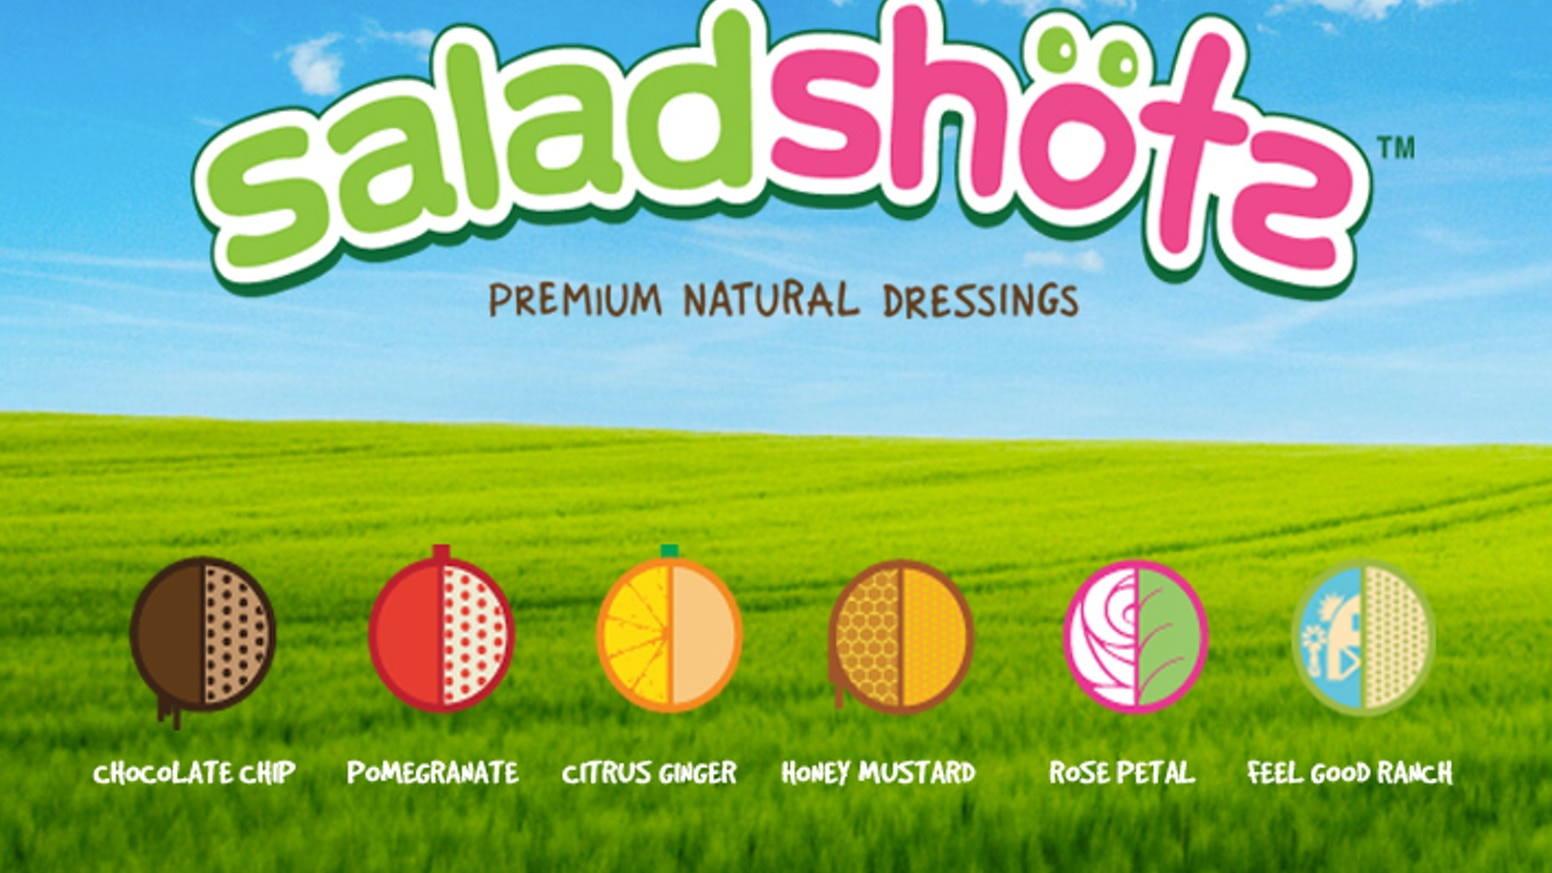 Saladshots re-invents dressings with exciting unique flavors, innovative packaging, and awesome nutritionals, all combining to make eating healthy more fun and good for you.